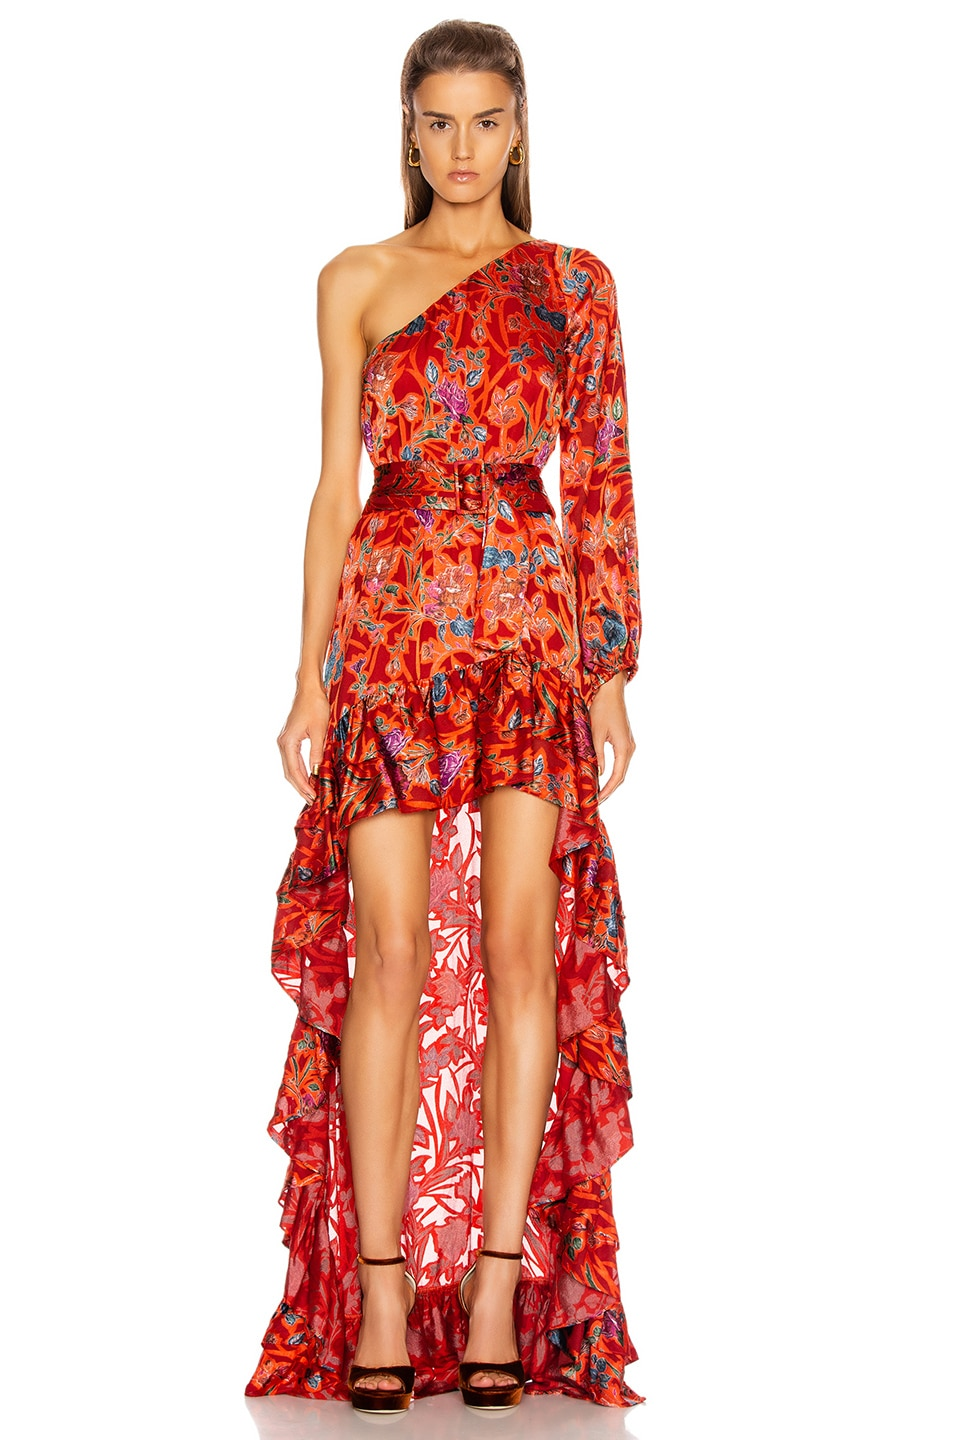 Image 1 of Alexis Marseill Dress in Red Flor